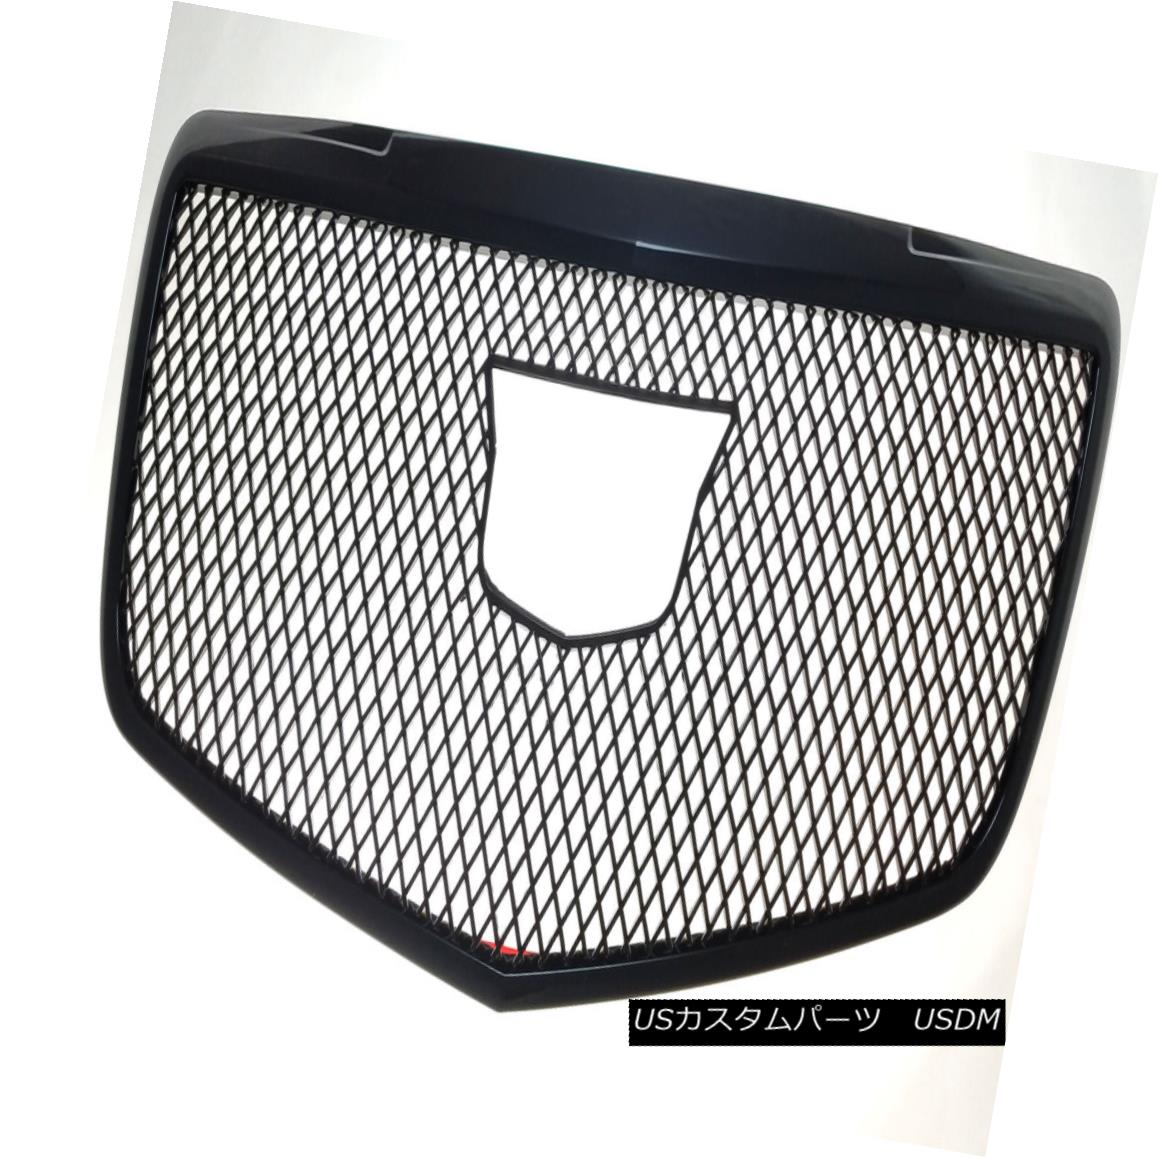 グリル Fits 15-18 CADILLAC ATS ALL MODELS - Gloss Black Grille Insert/Overlay 15-18 CADILLAC ATS ALL MODELSに適合 - グロスブラックグリルインサート/オーバーレイ